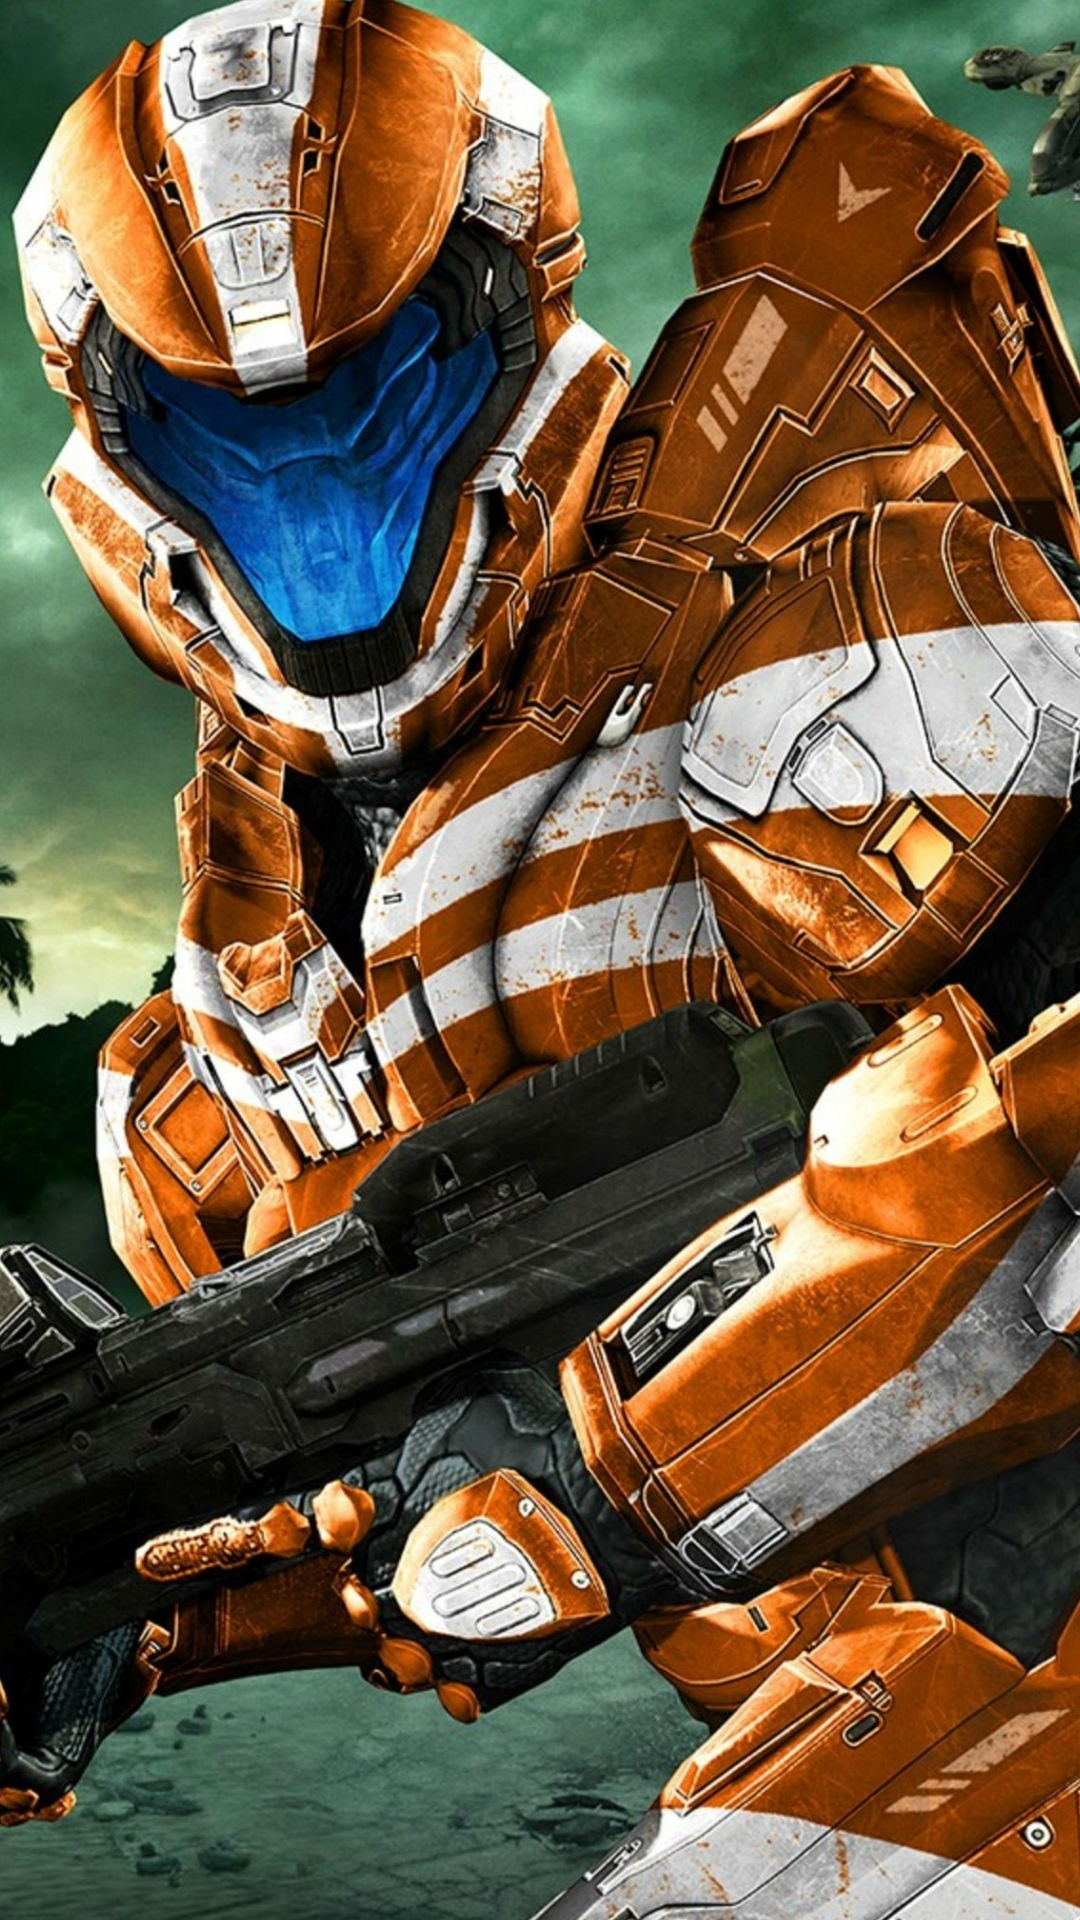 Halo Spartan Strike 2015 Wallpapers 1080x1920 659483